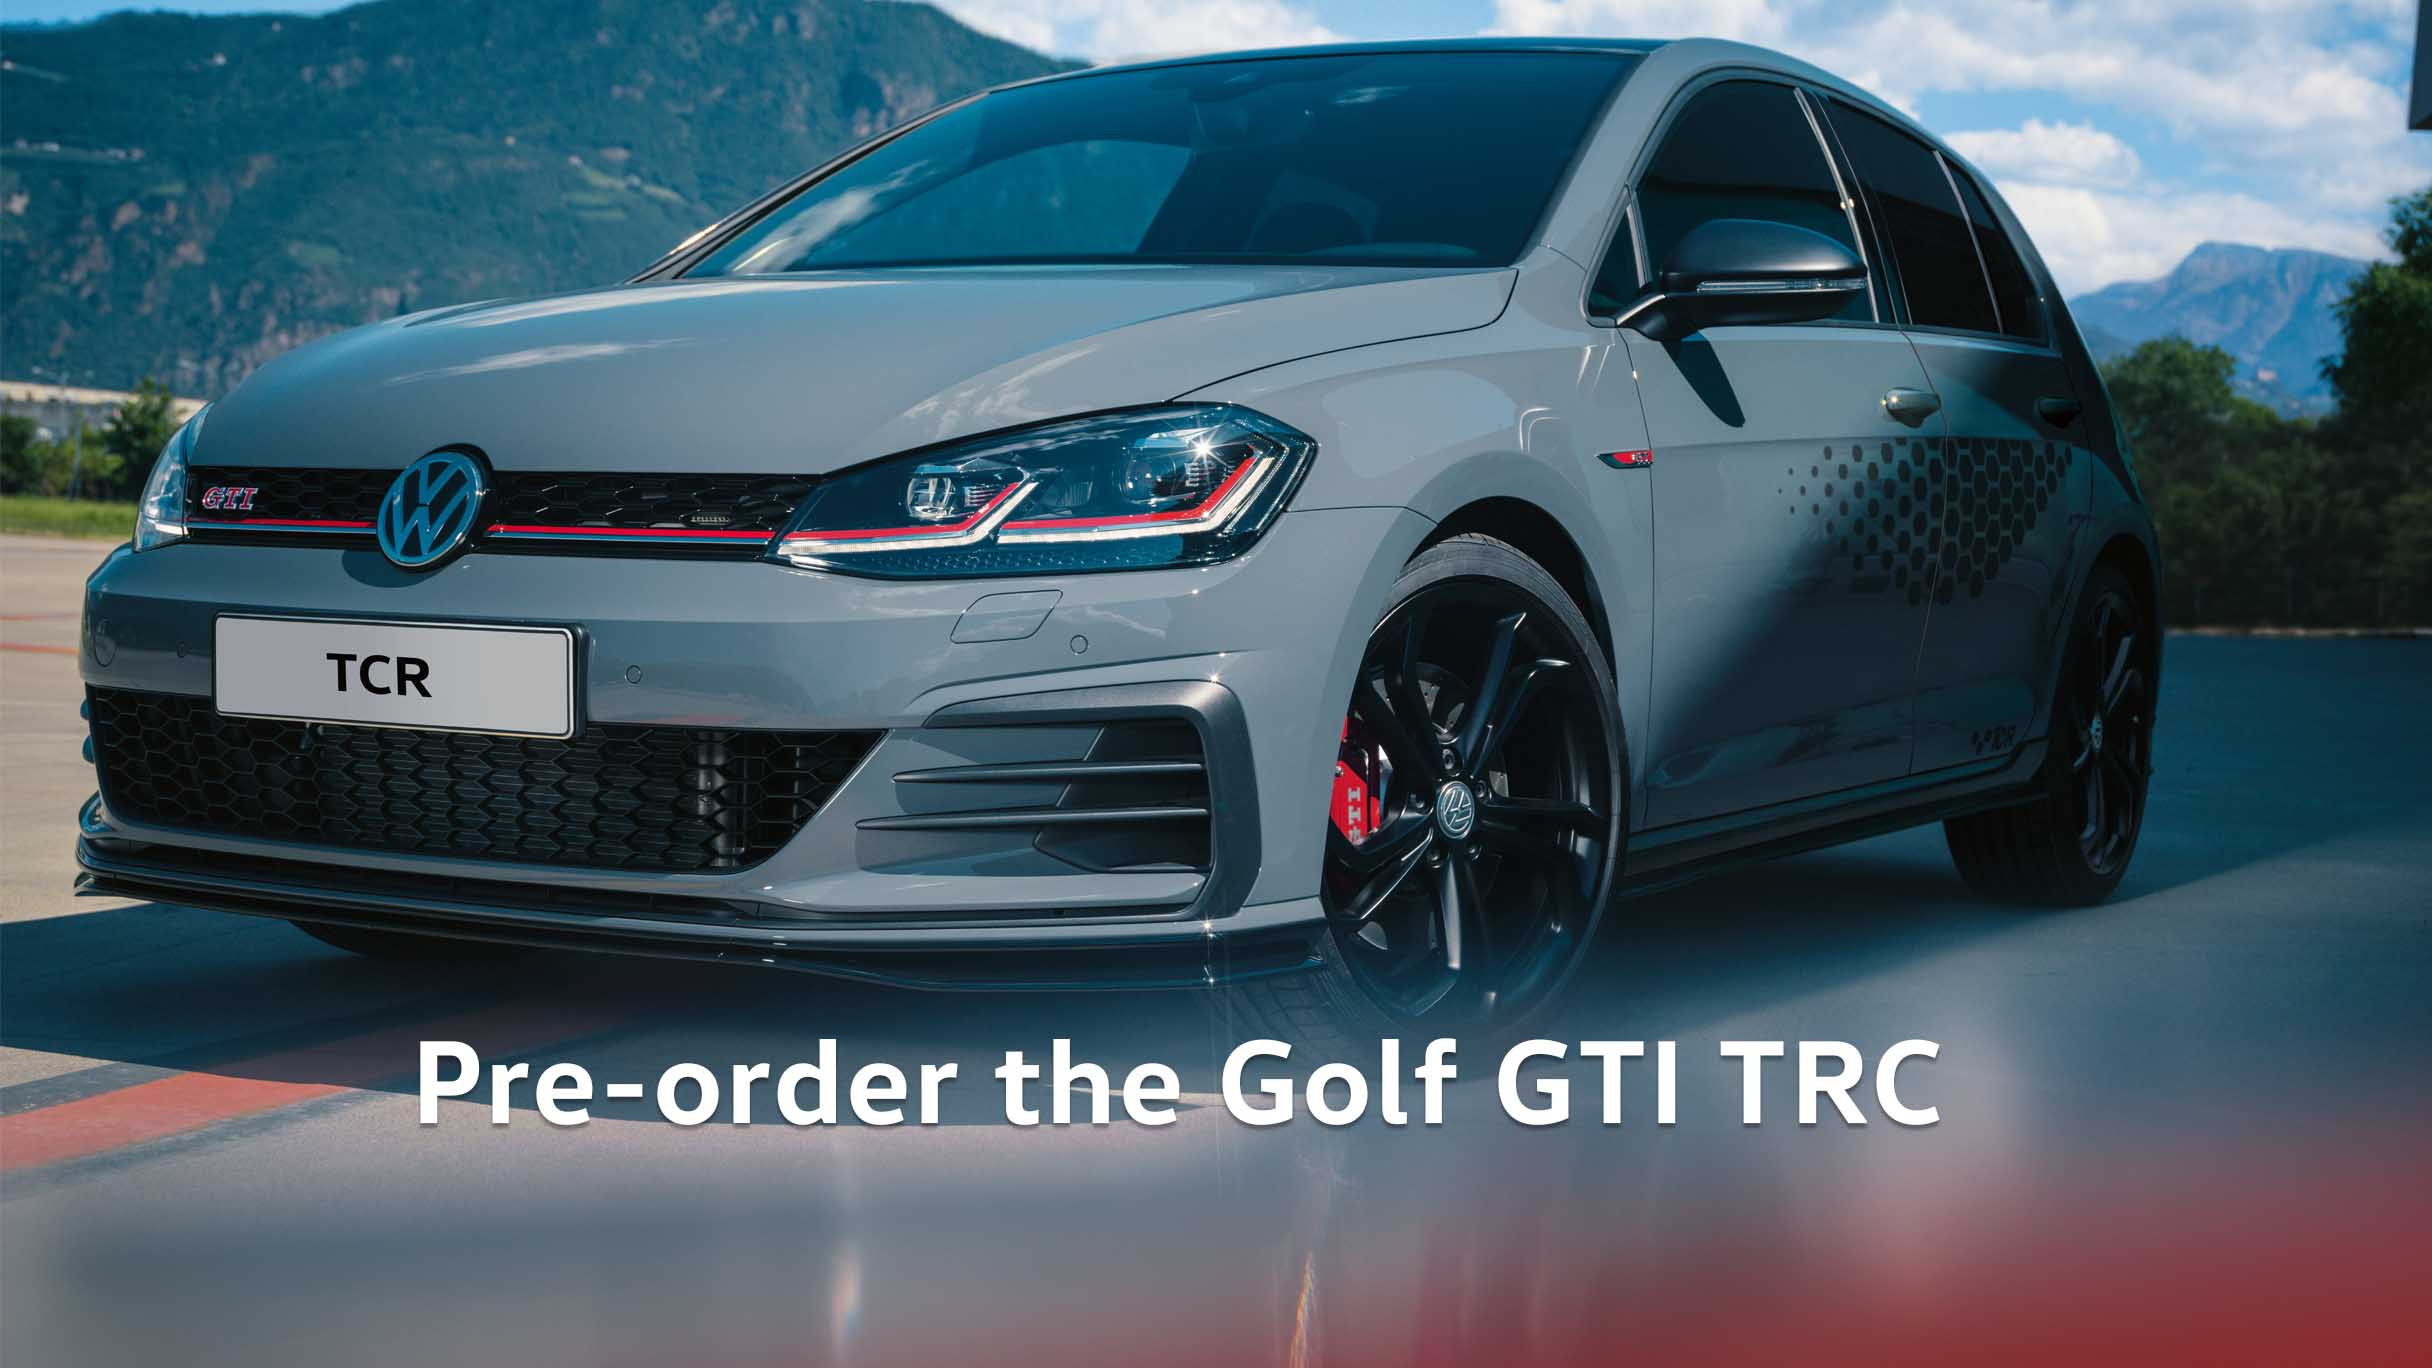 Golf GTI TCR at Barons Woodmead